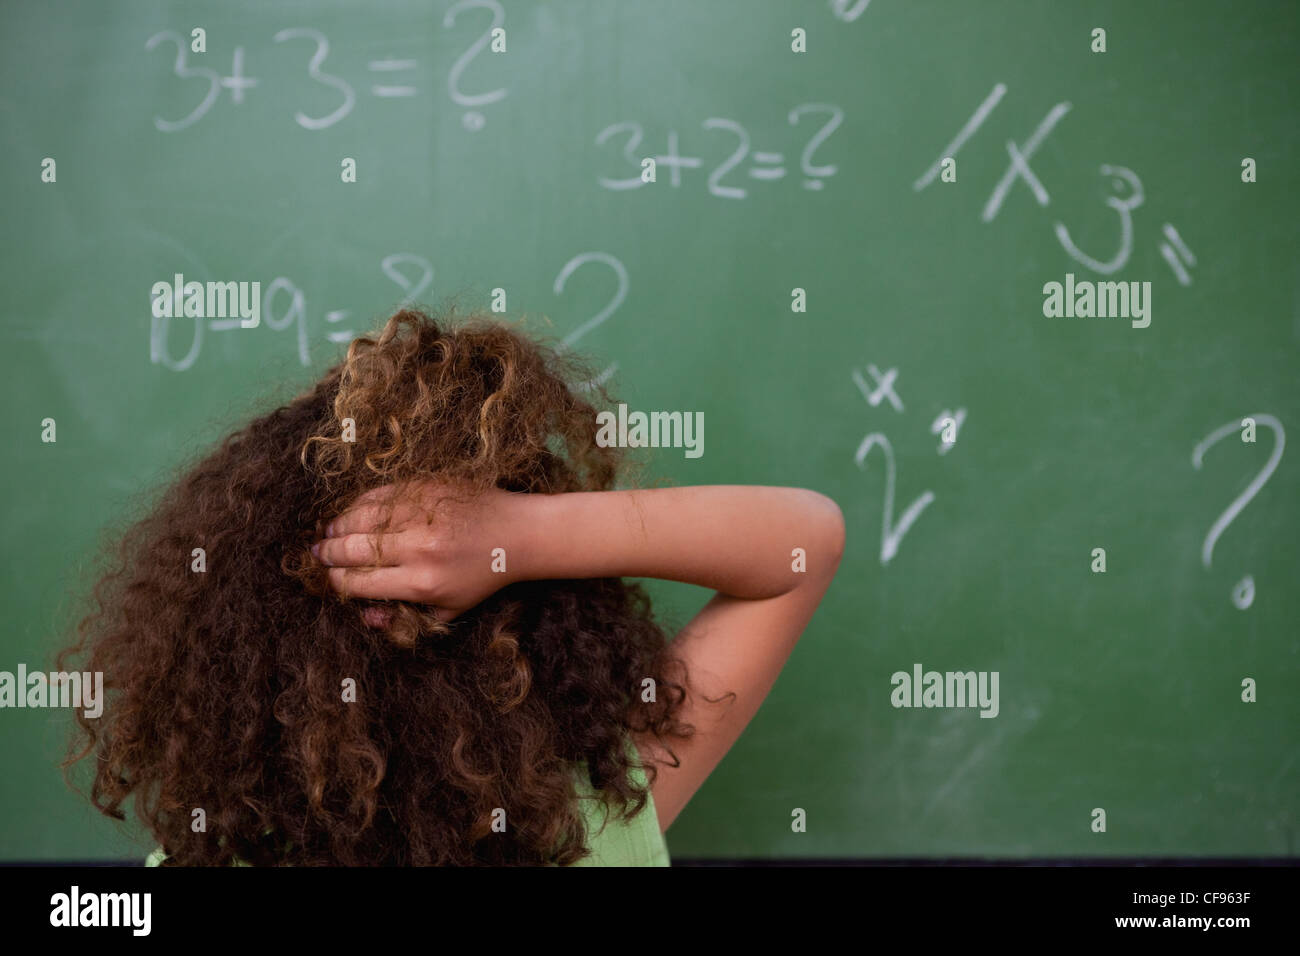 Schoolgirl thinking about mathematics while scratching the back of her head - Stock Image